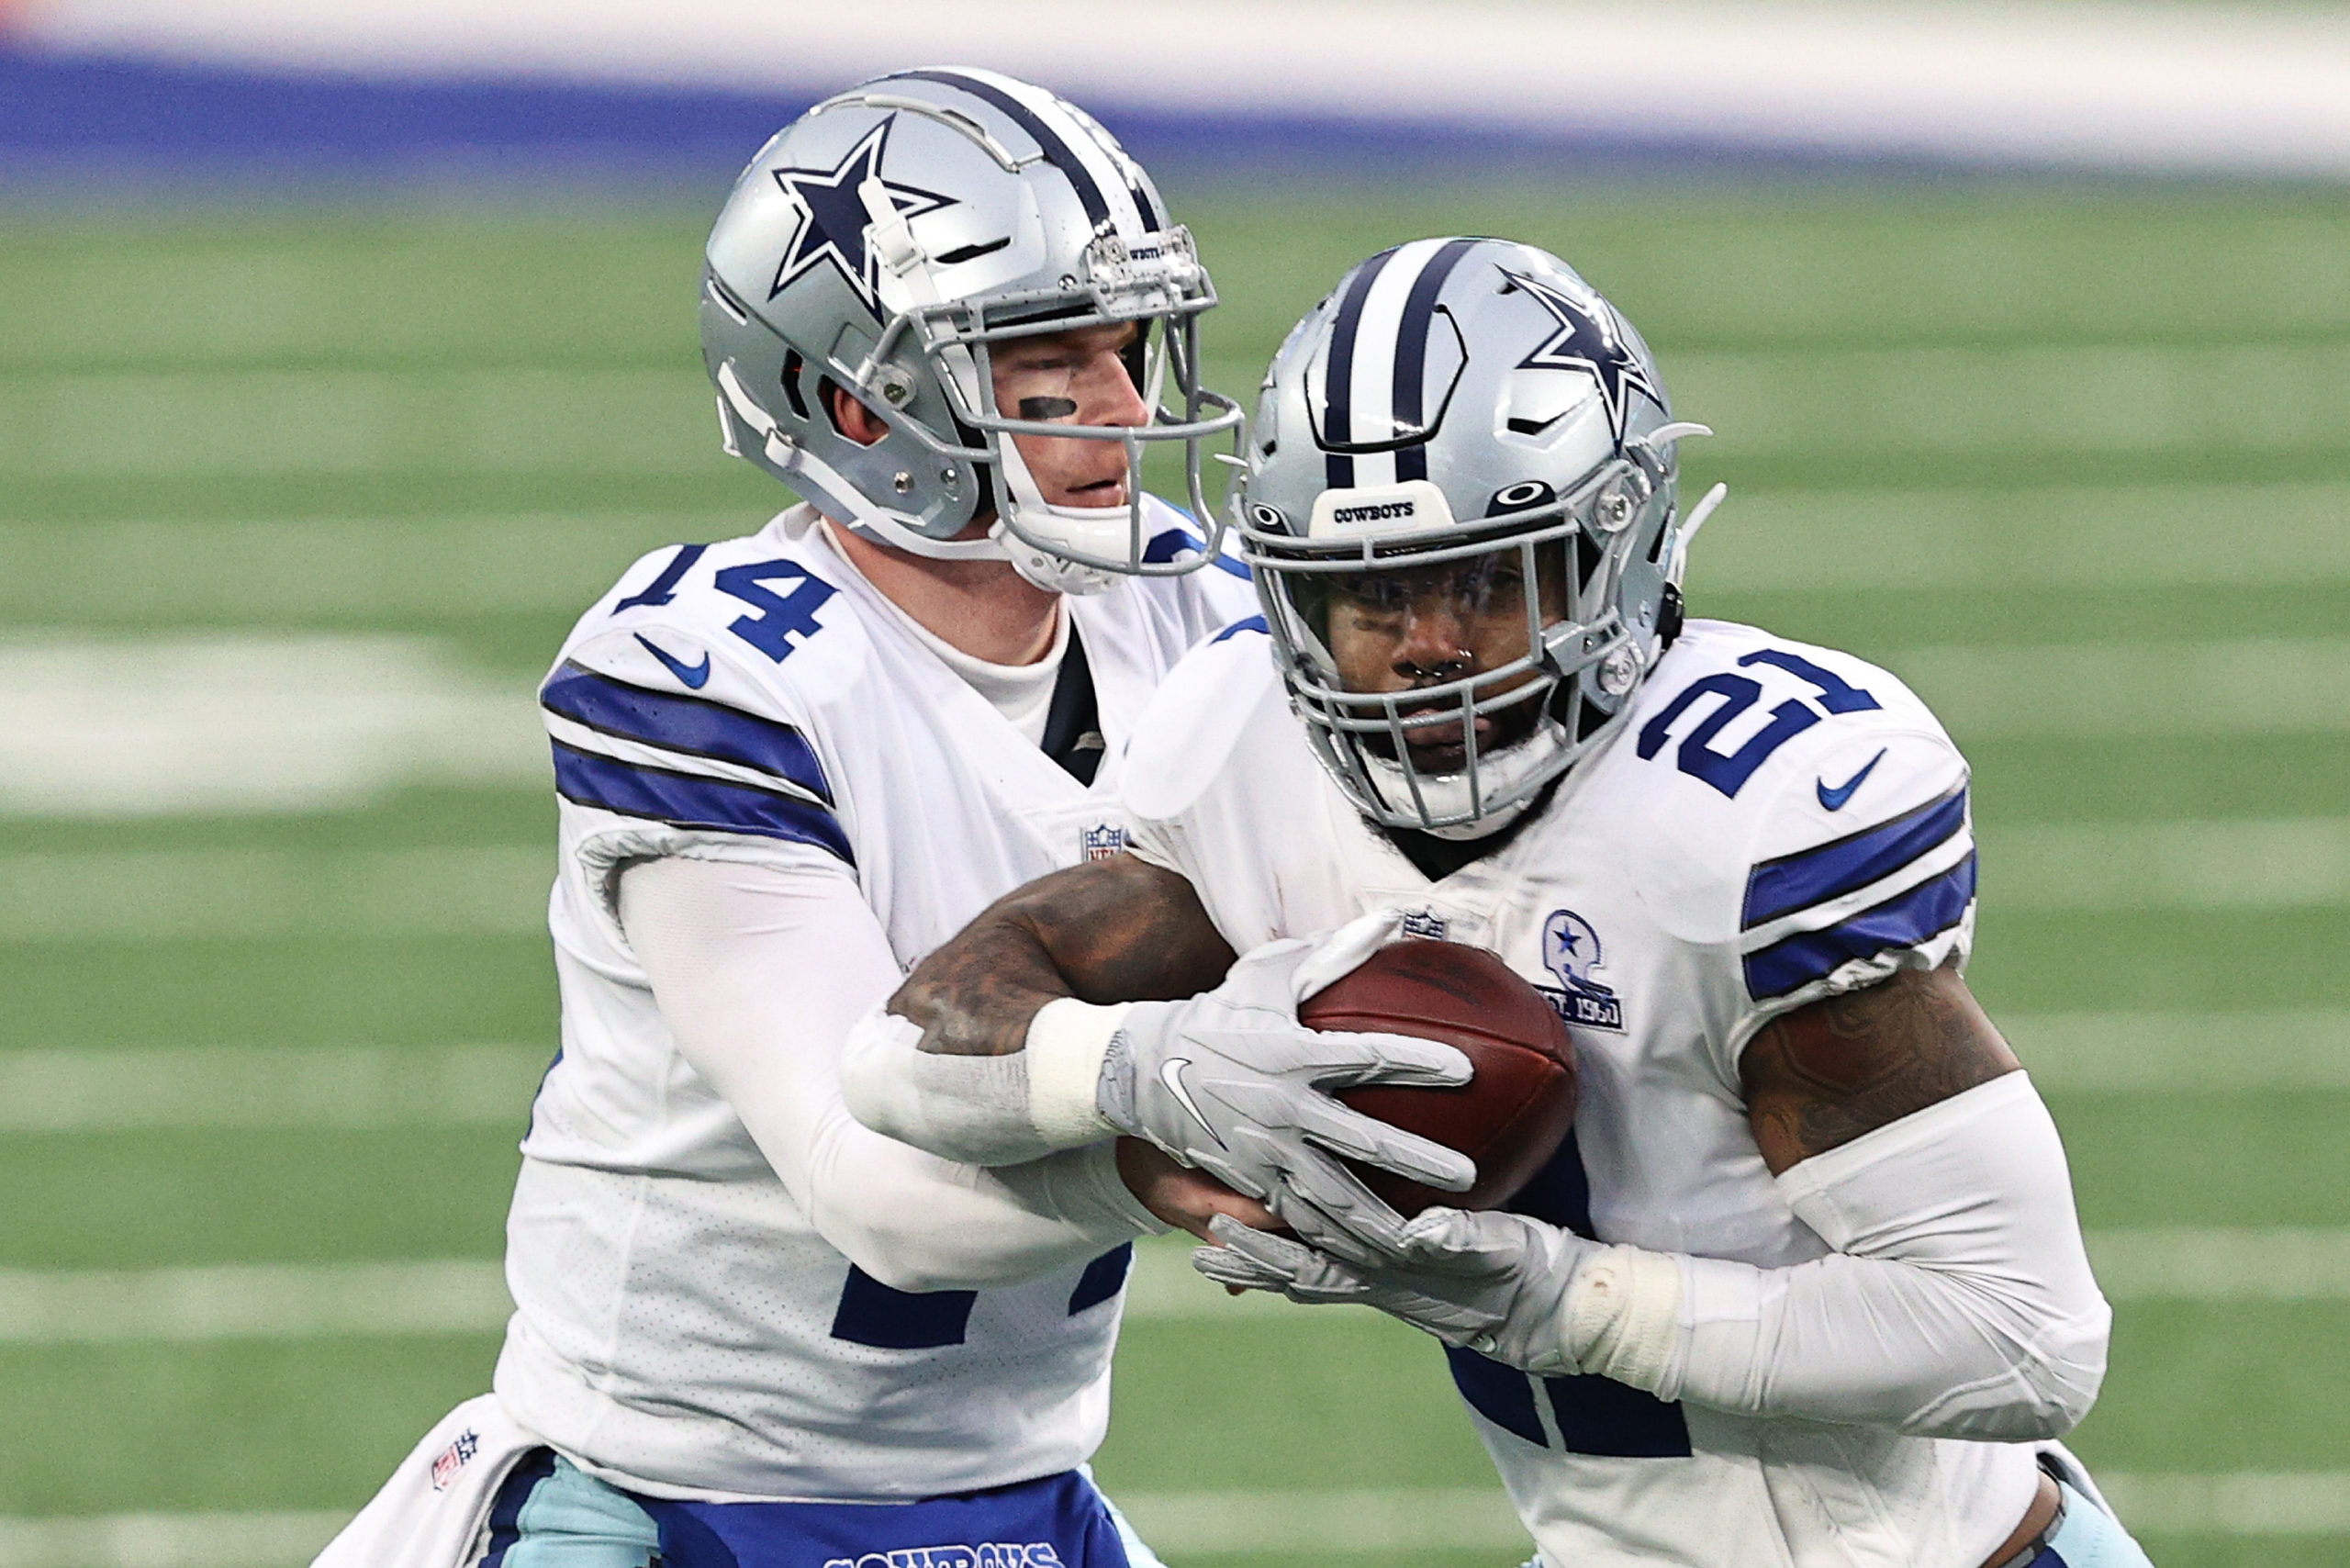 cowboys-ezekiel-elliott-cited-after-his-dogs-hospitalized-2-folks-with-injuries.jpg